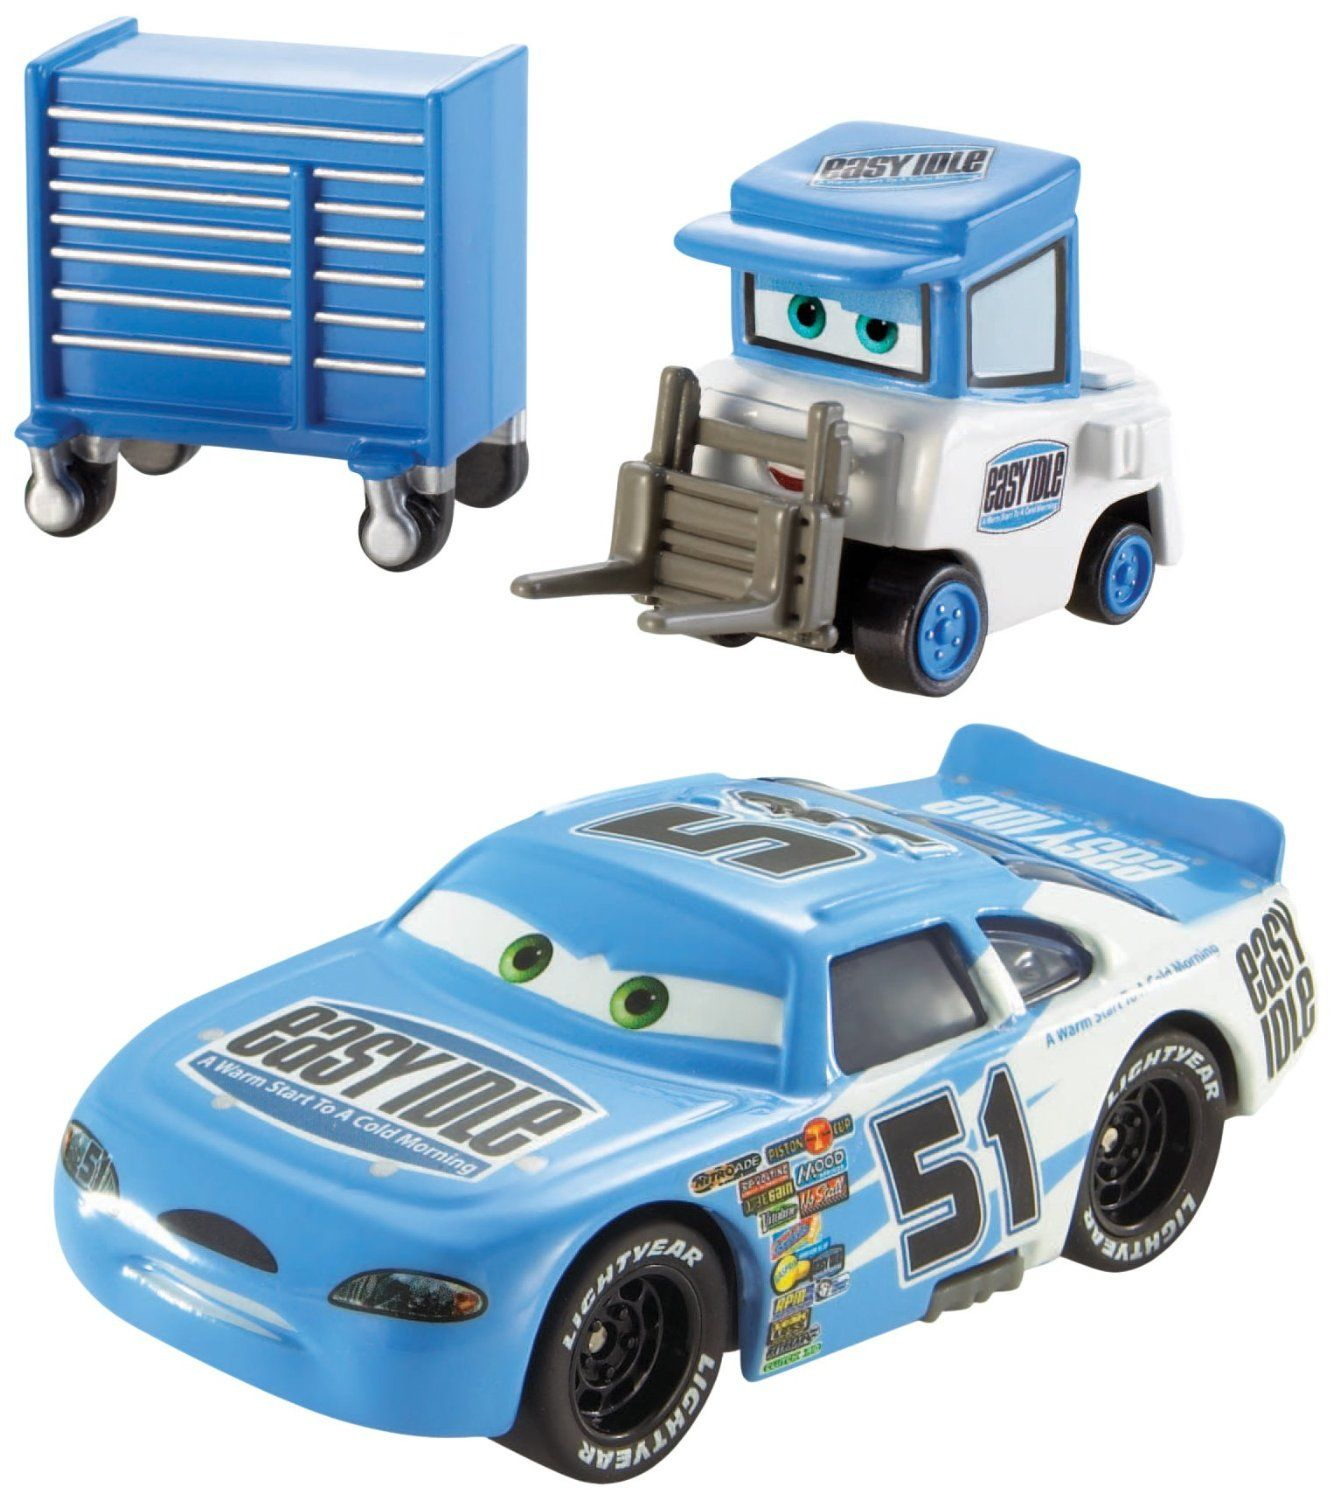 Mattel disney pixar cars 3 piston cup racers cars 1 to cars 3 visual - Disney Pixar Cars Piston Cup Die Cast Vehicles Ruby Easy Oaks And Easy Idle Pitty And Scale